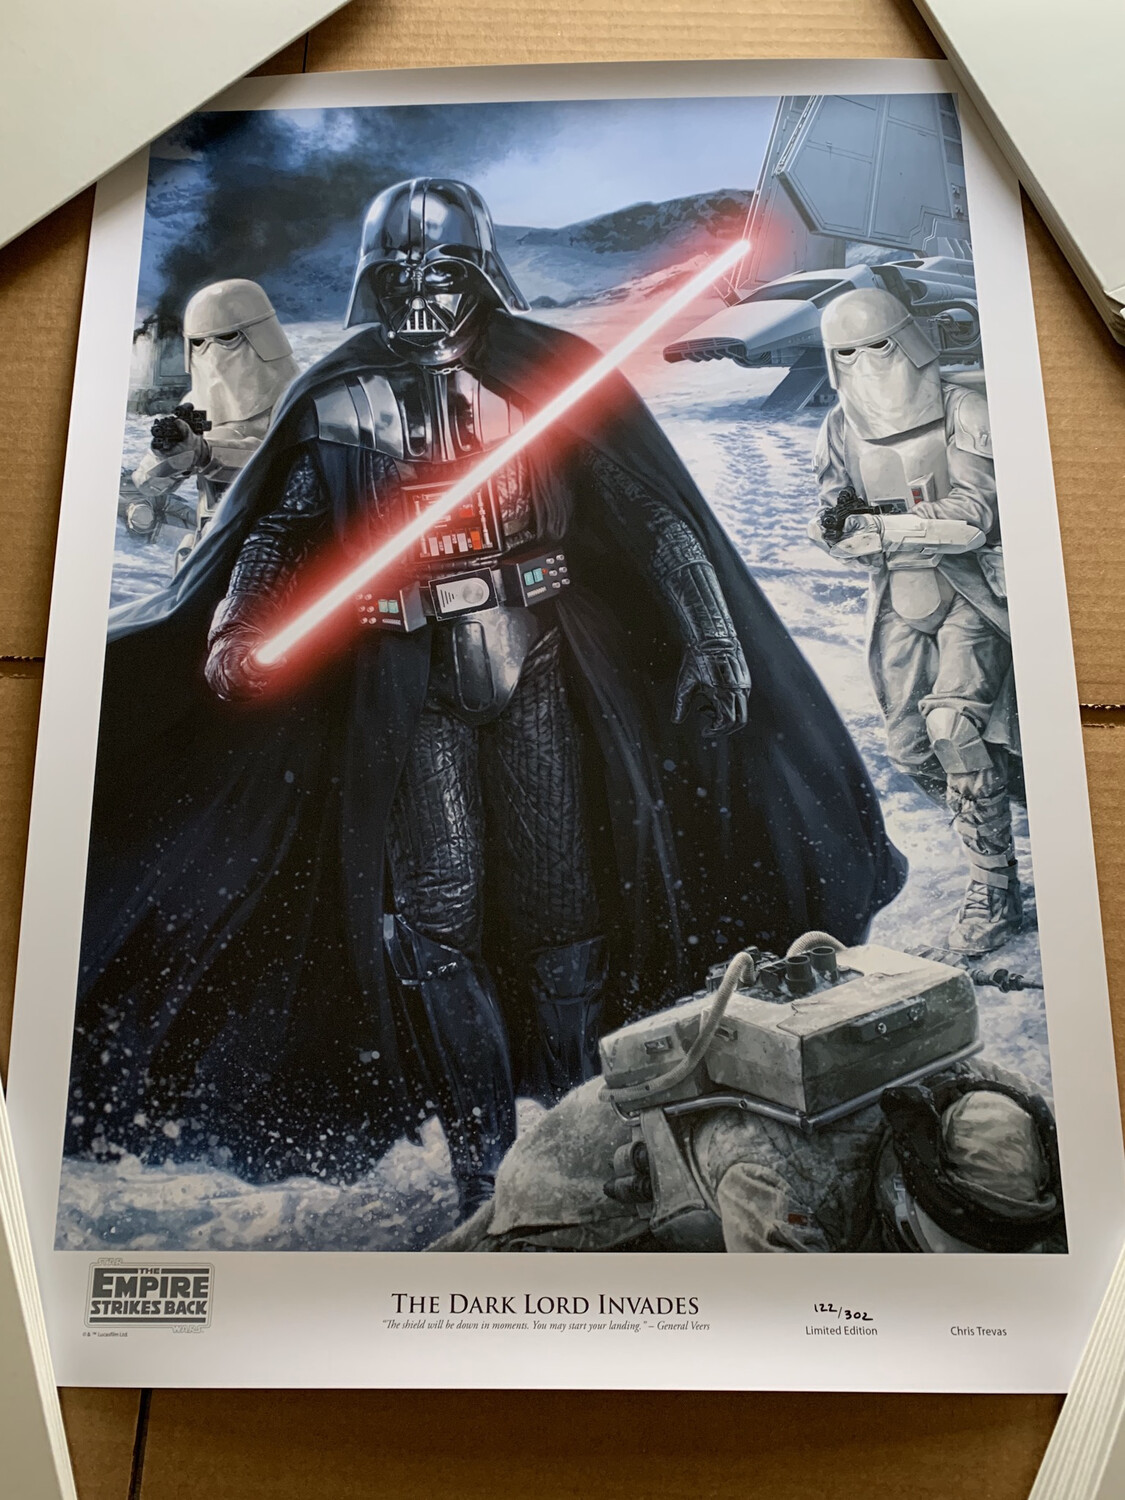 THE DARK LORD INVADES #122 OF 302 BY CHRIS TREVAS WITH FREE SIGNED DARTH VADER PHOTO